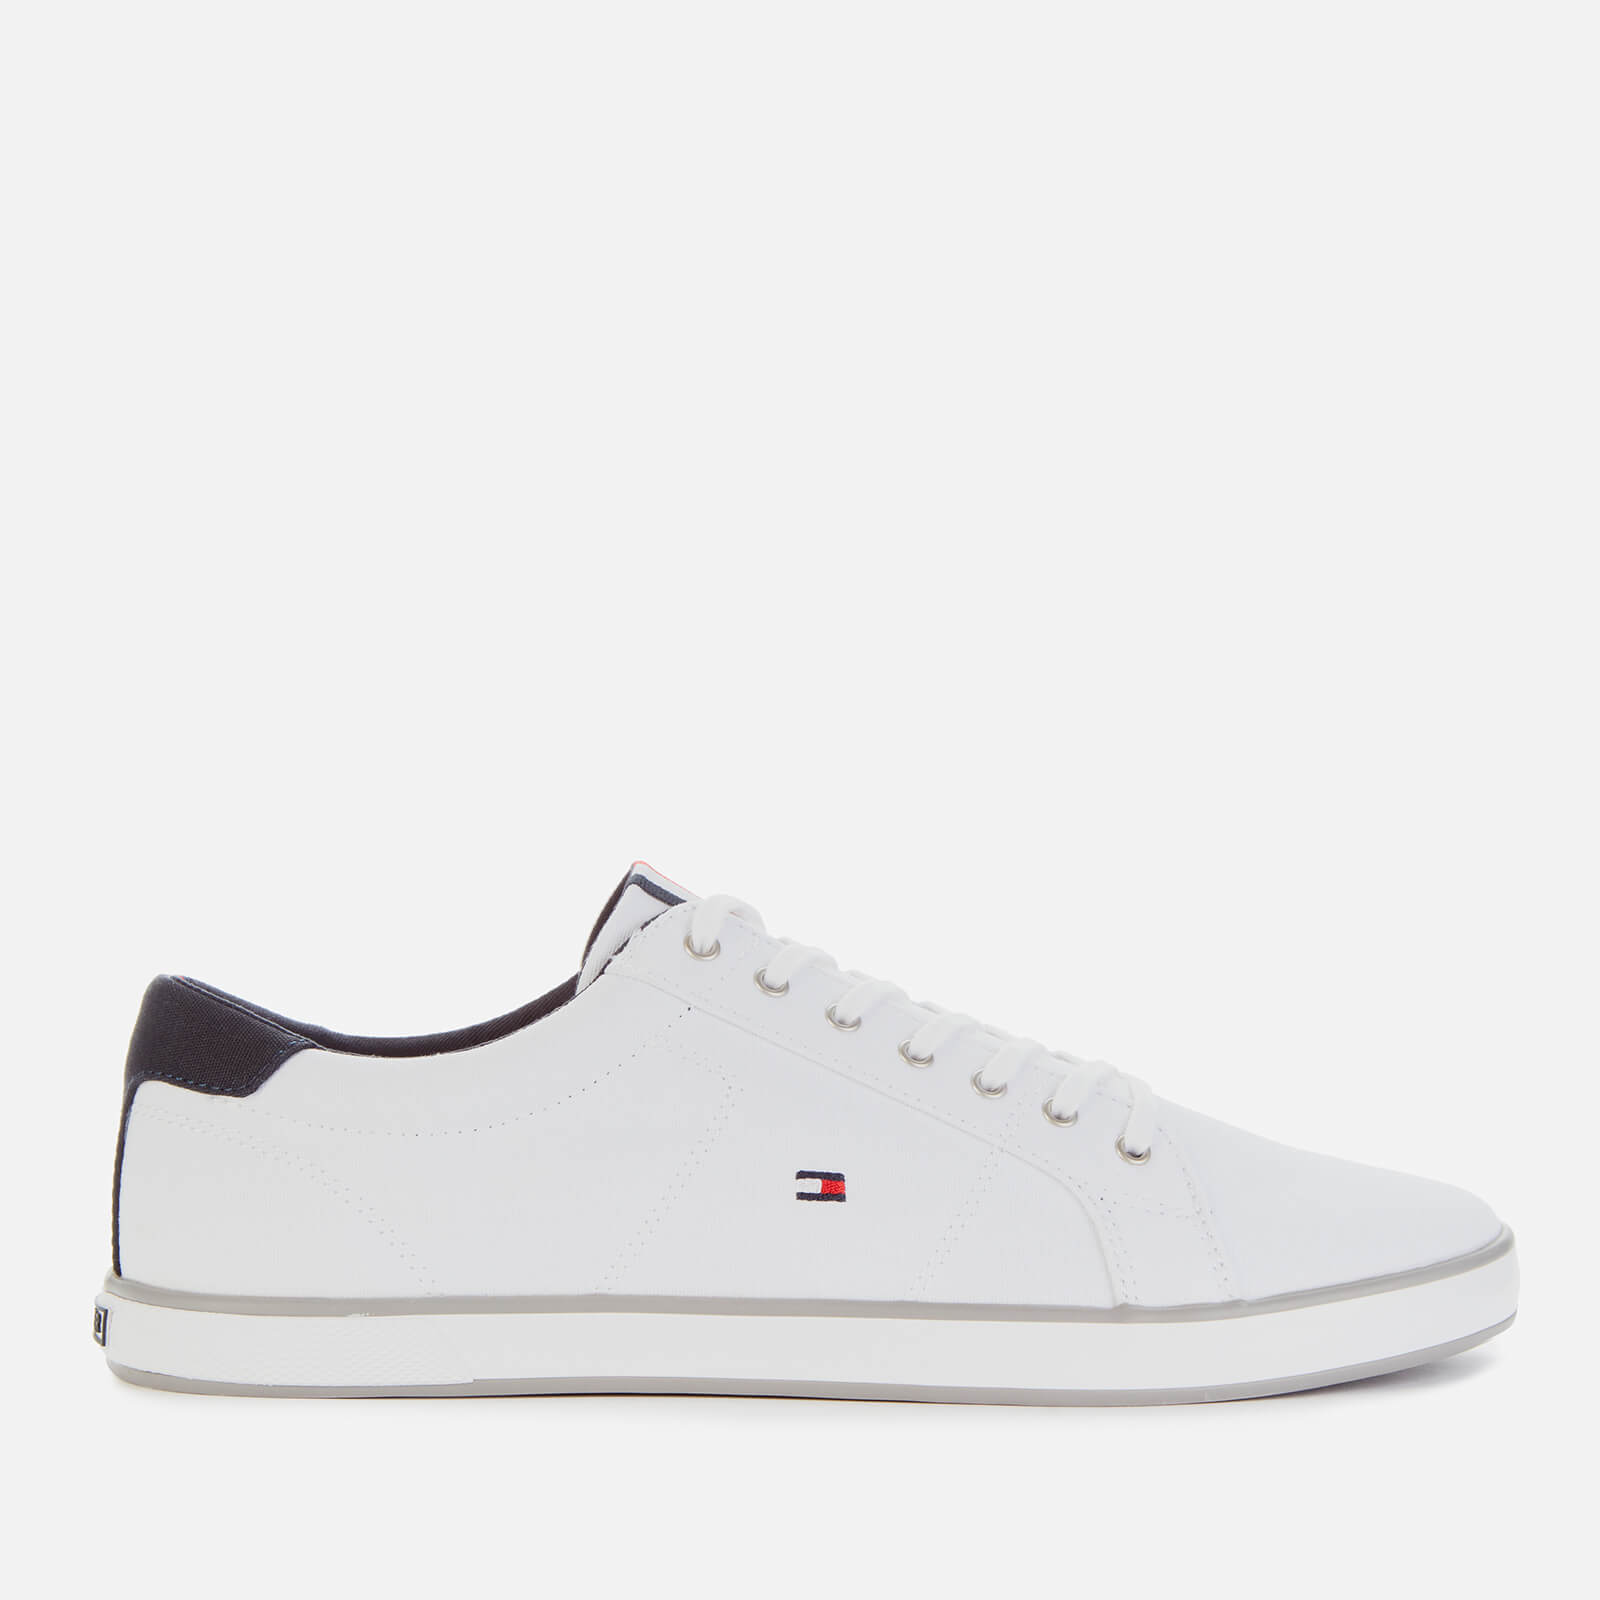 Tommy Hilfiger Mens Harlow Canvas Pumps White Uk 8